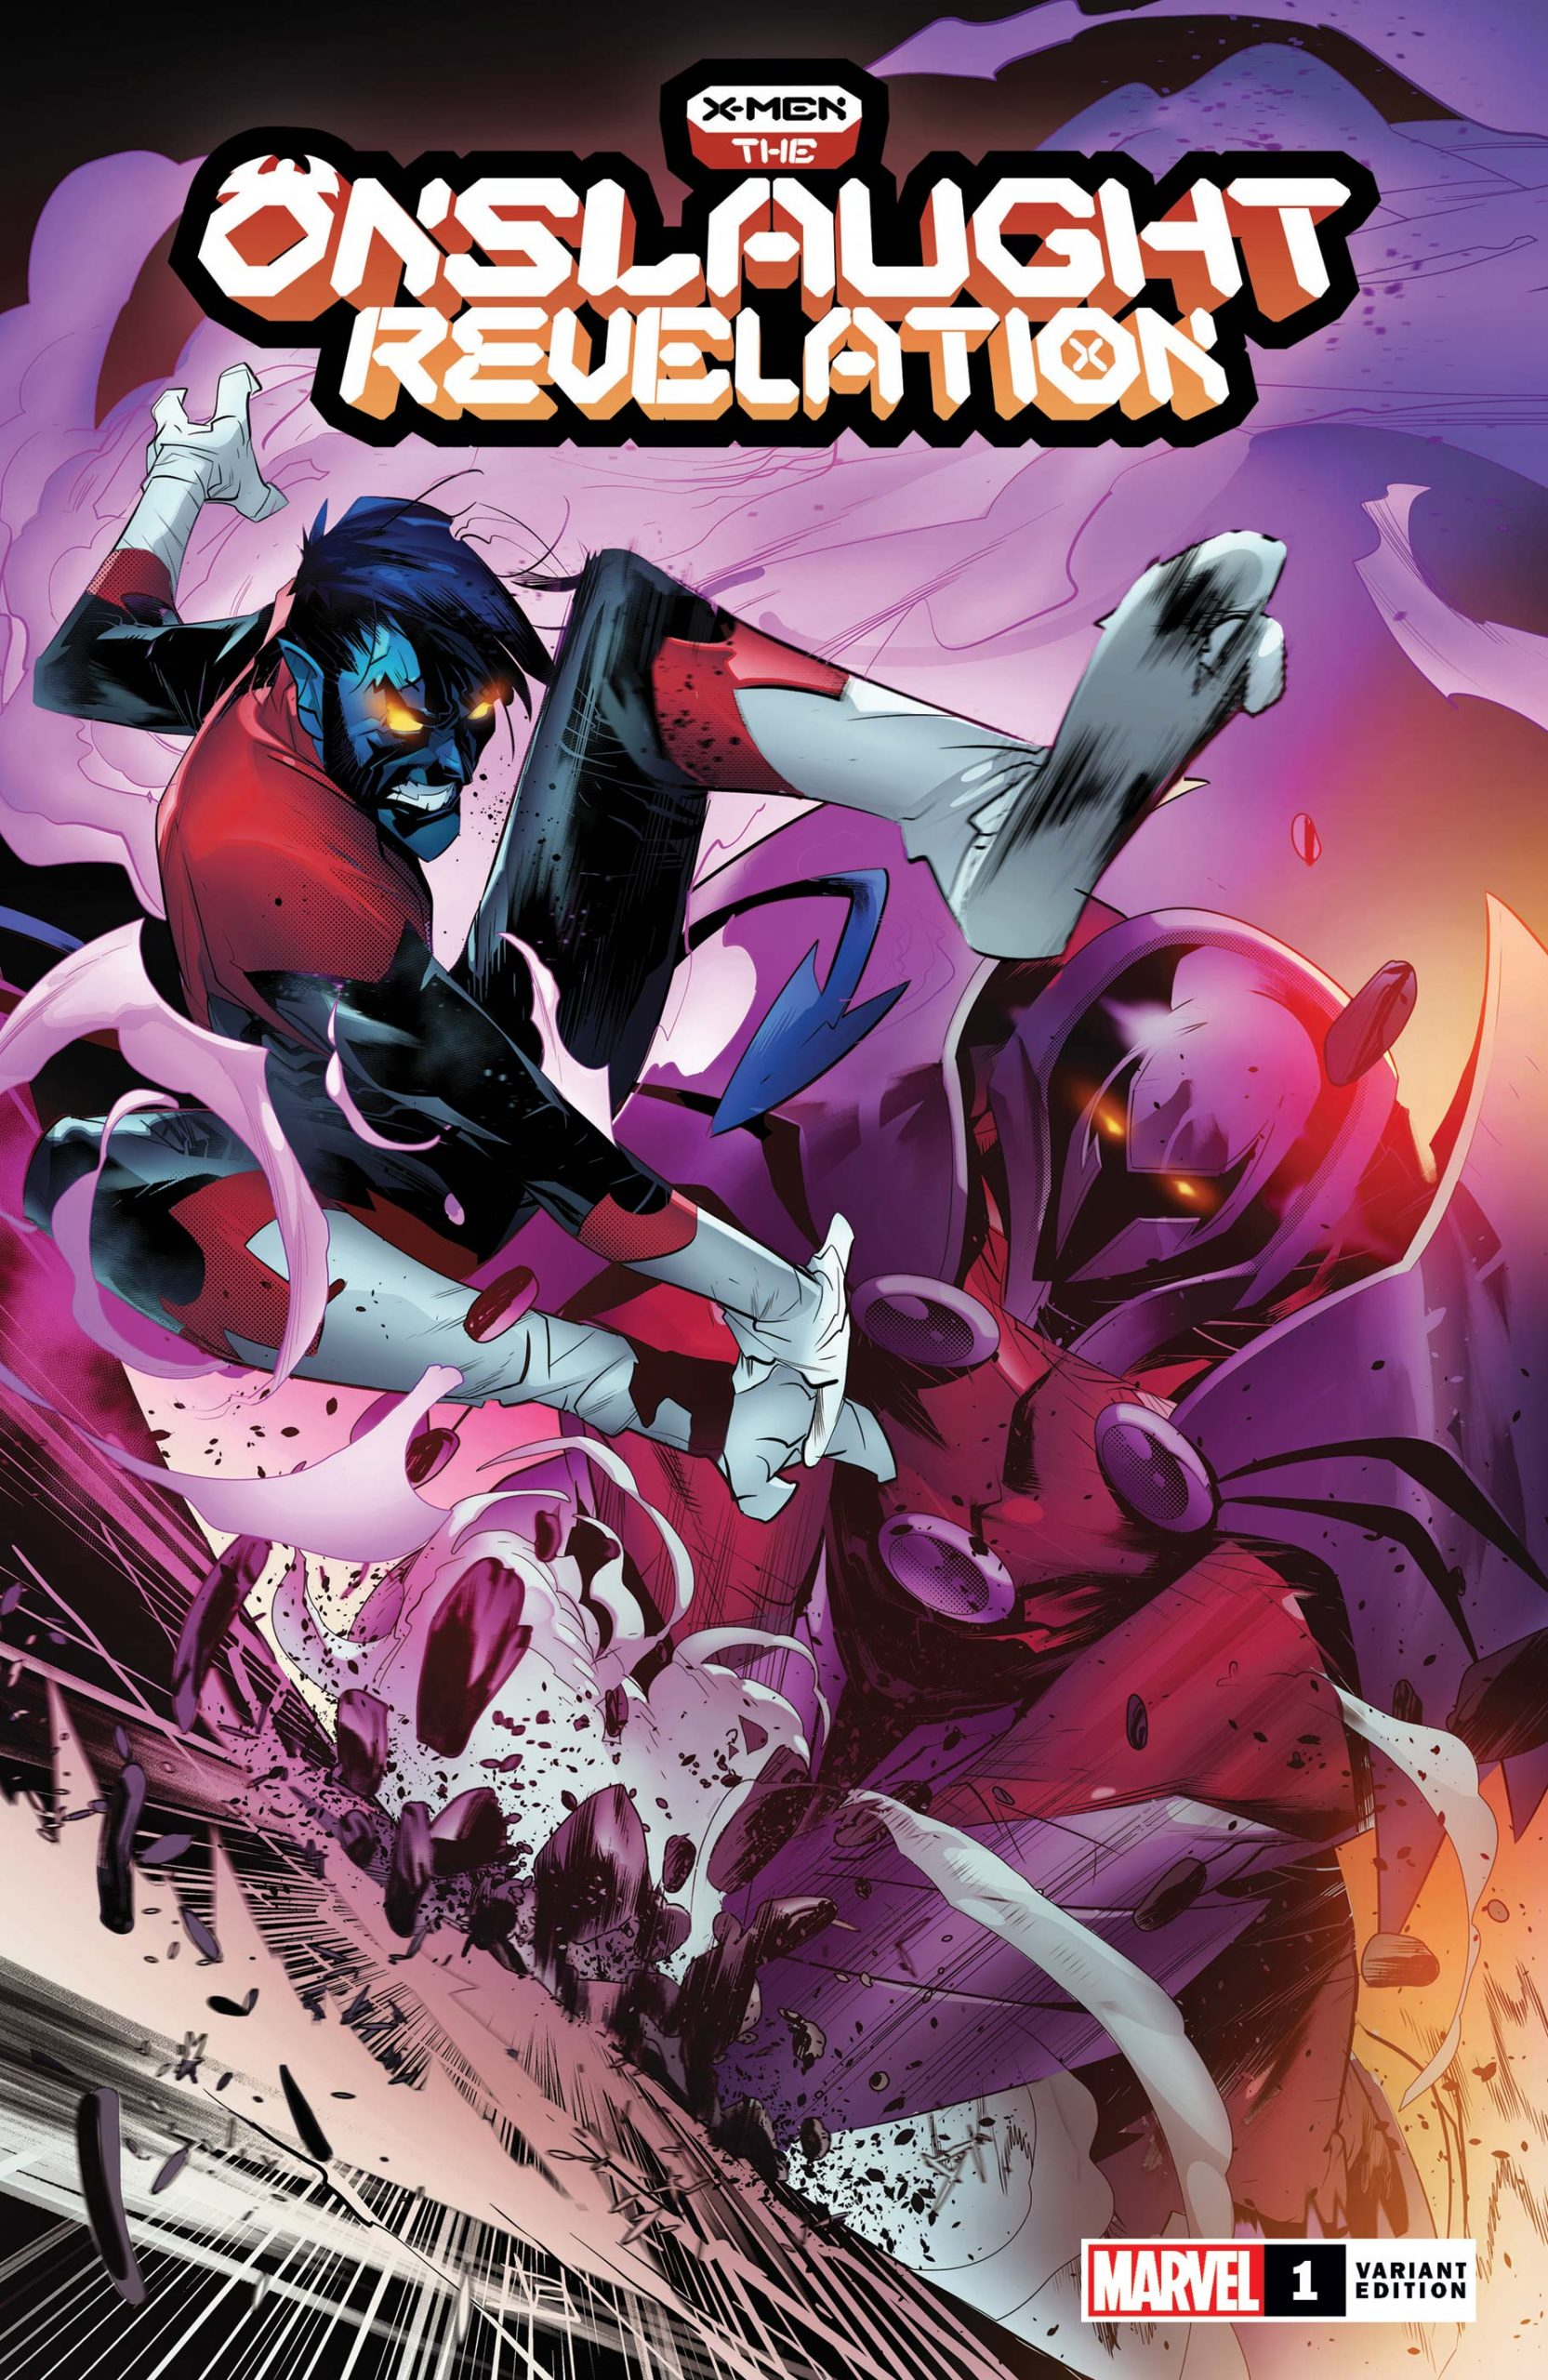 X-Men-Onslaught-Revelation-1-spoilers-0-2-scaled-1 X-Men-Onslaught-Revelation-1-spoilers-0-2-scaled-1